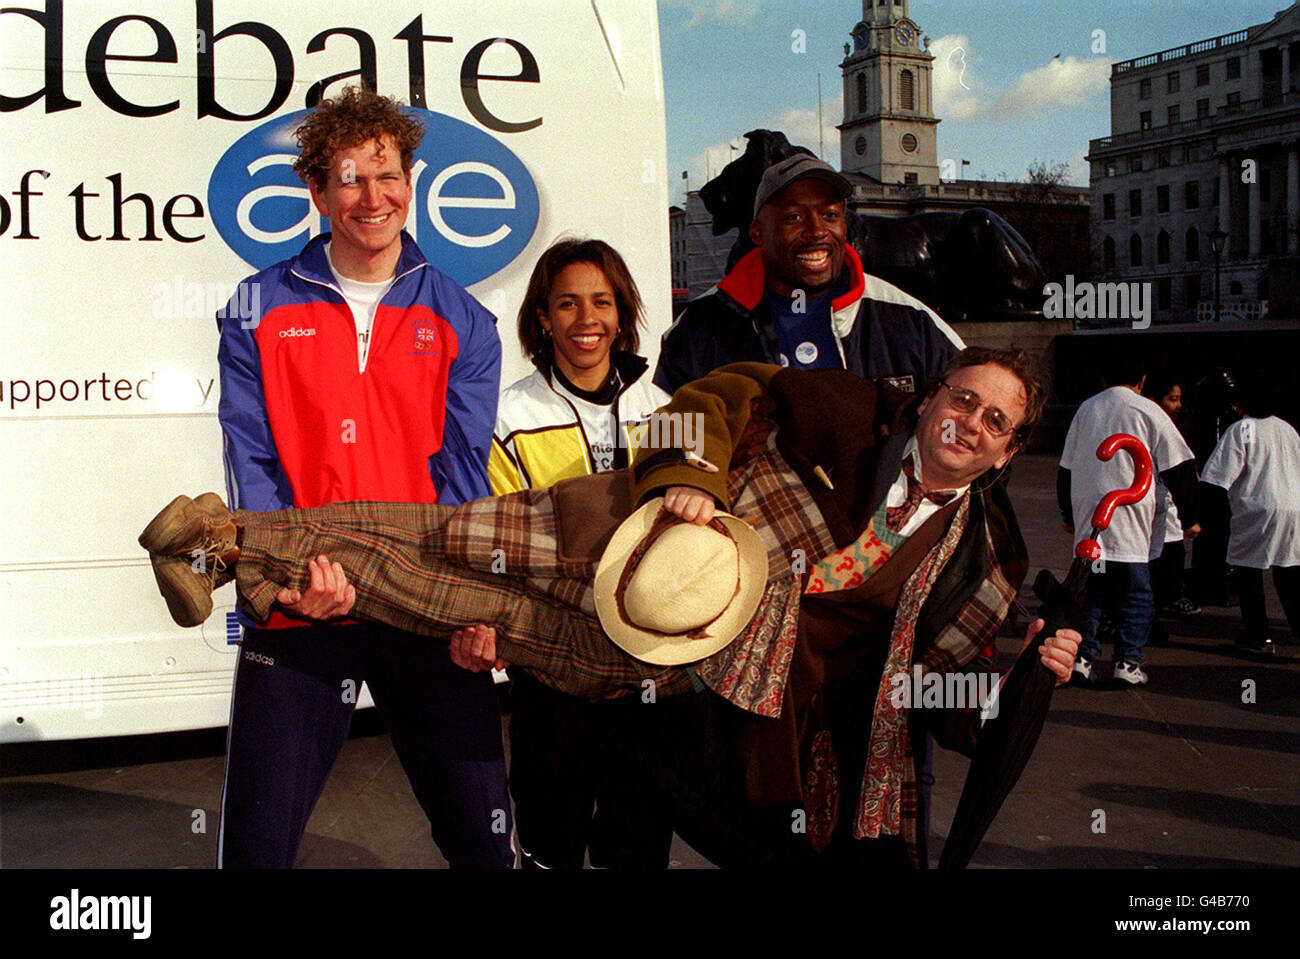 PA NEWS PHOTO 5/3/98  CELEBRITIES JOIN TOGETHER IN LONDON FOR THE LAUNCH OF THE MILLENNIUM DEBATE OF THE AGE. SYLVESTER - Stock Image